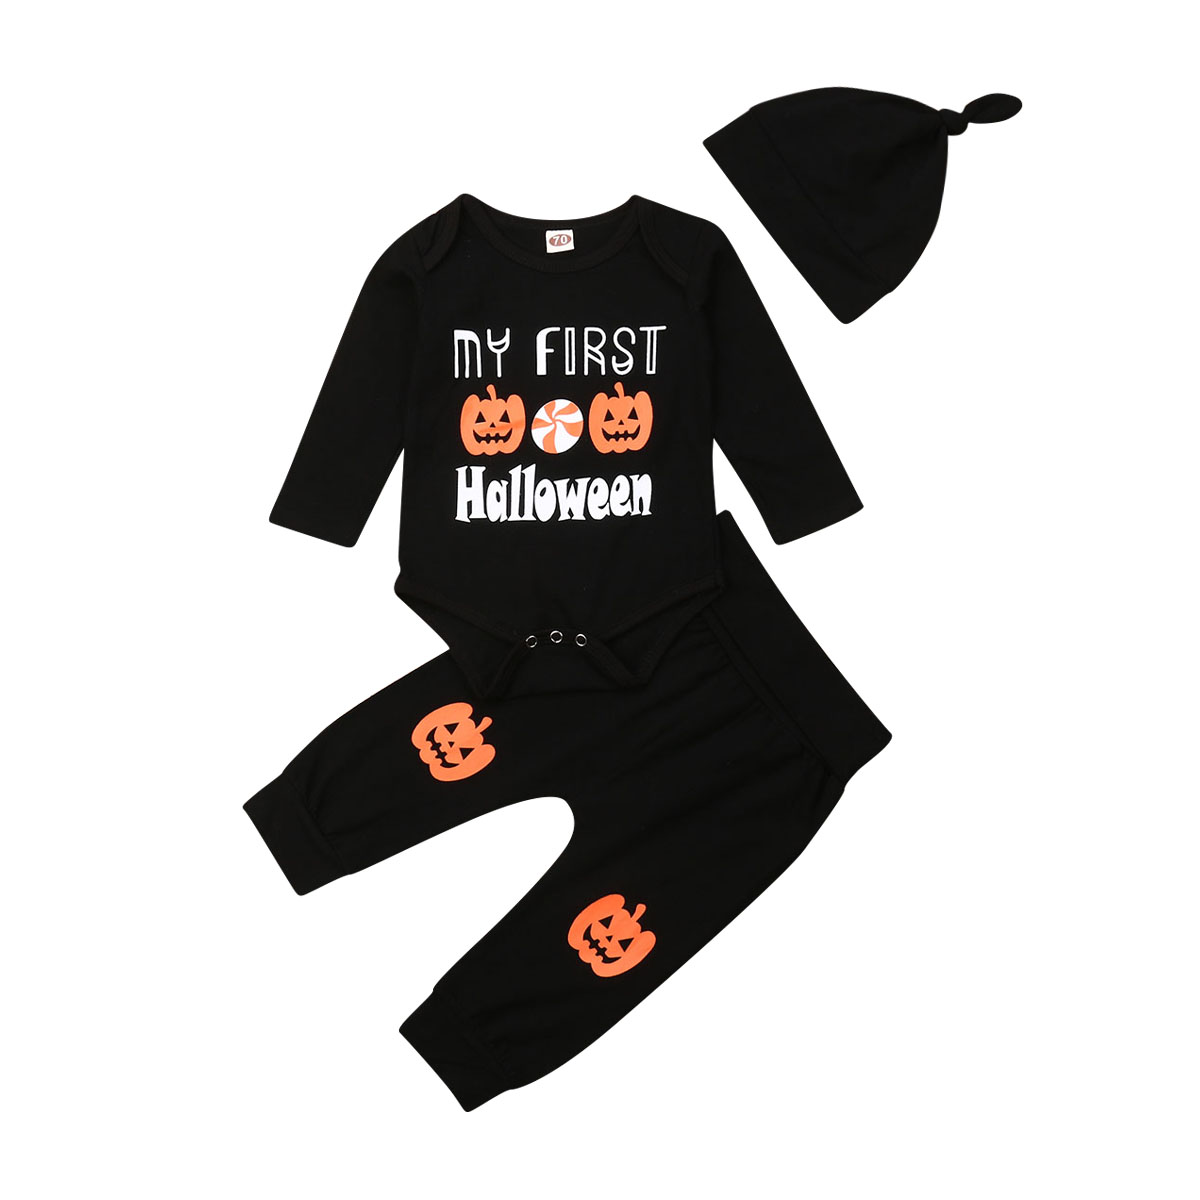 <font><b>Newborn</b></font> <font><b>Baby</b></font> Boy <font><b>Girl</b></font> Halloween <font><b>Clothes</b></font> 3PCS Pumpkin Romper Bodysuit Long Pants Outfits <font><b>Autumn</b></font> <font><b>Clothes</b></font> My First Holloween 0-18M image